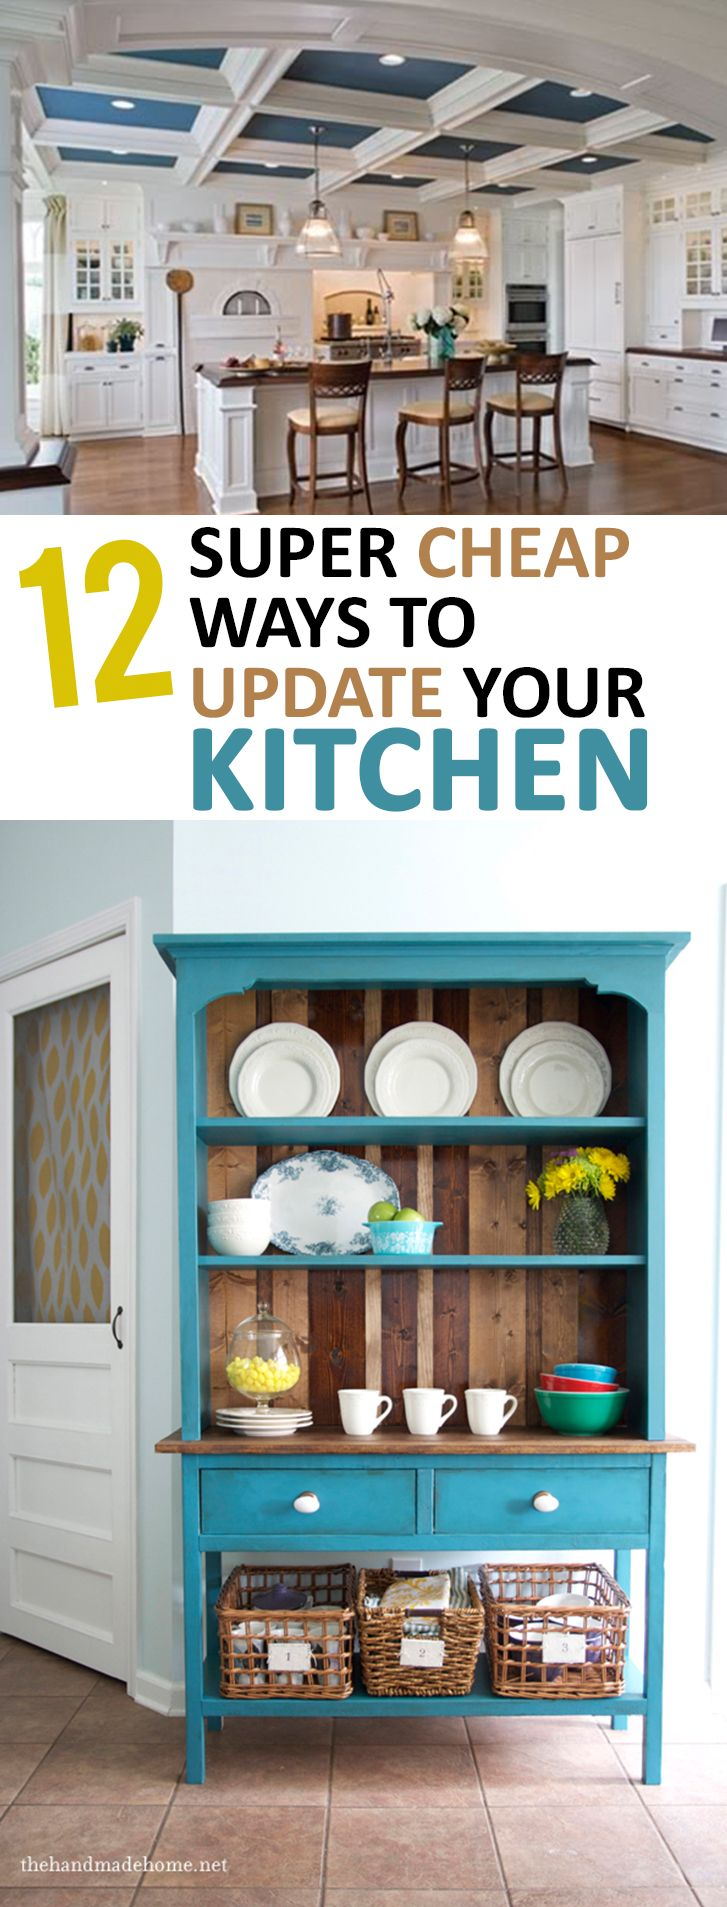 Kitchen, Update Your Kitchen, Cheap Kitchen Updates, Kitchen Remodel, Cheap Kitchen Remodel, Frugal Home Remodel, Home Remodel, DIY Kitchen Remodeling TIps, DIY Kitchen, Kitchen Decor, Kitchen Home, DIY Kitchen, Easy Home Updates, Home Upgrades.